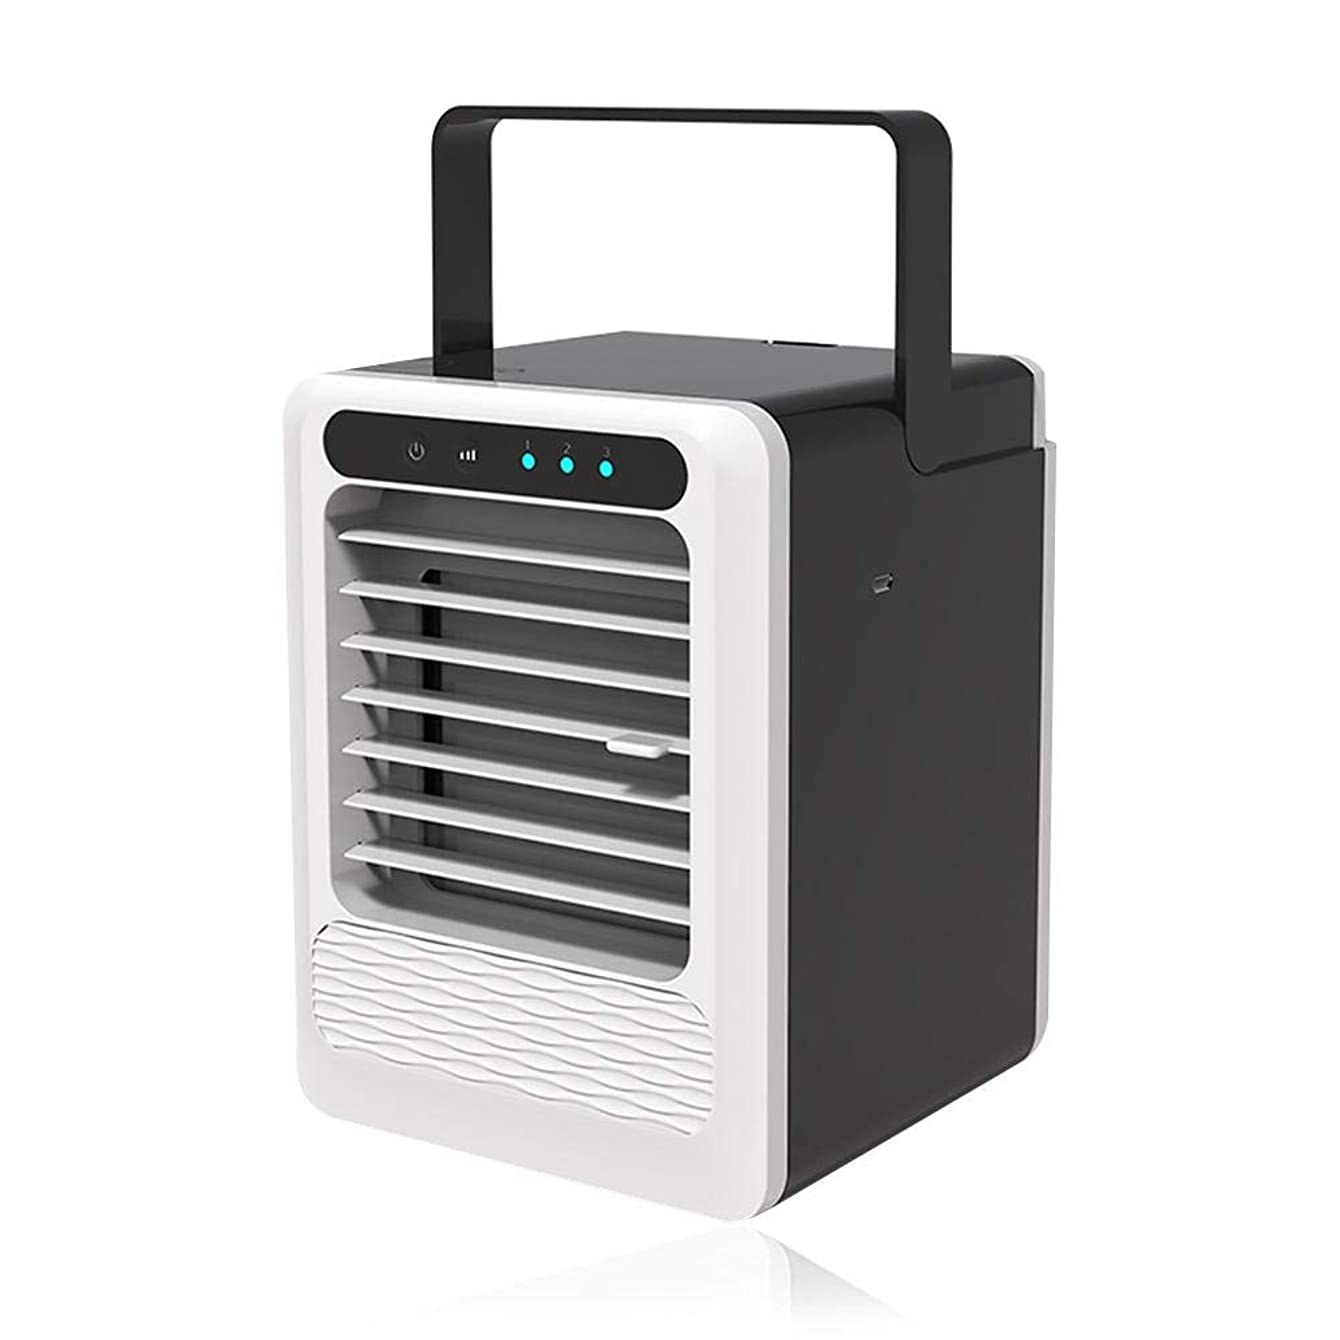 Portable Air Cooler, Auto Air Conditioner USB Fan Personal Cooler with Handle 3 Speeds Wind Adjustable Ultra Compact Evaporative Coolers for Car, Home, Office, Camping